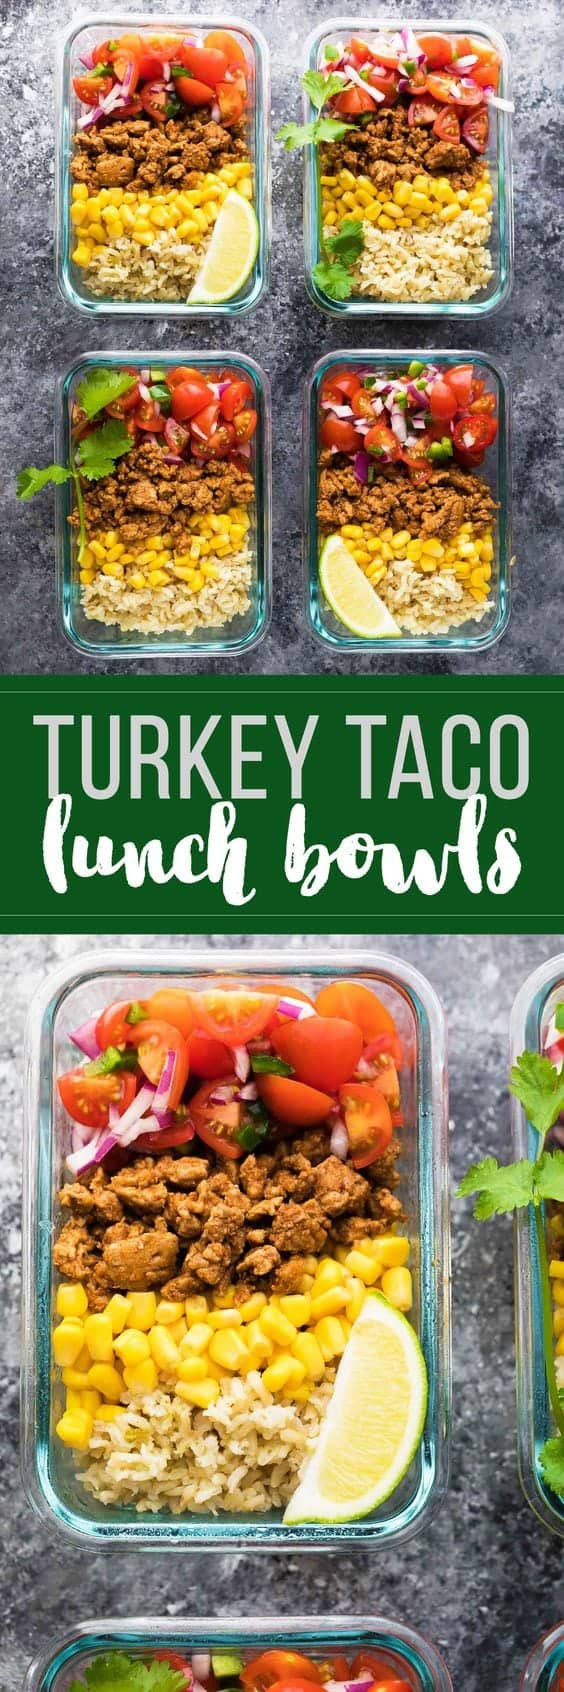 Make these turkey taco lunch bowls on the weekend and you'll have four healthy, delicious and filling lunches ready for the work week! They are a great make ahead lunch that you can eat cold making for an easy and healthy lunch! 